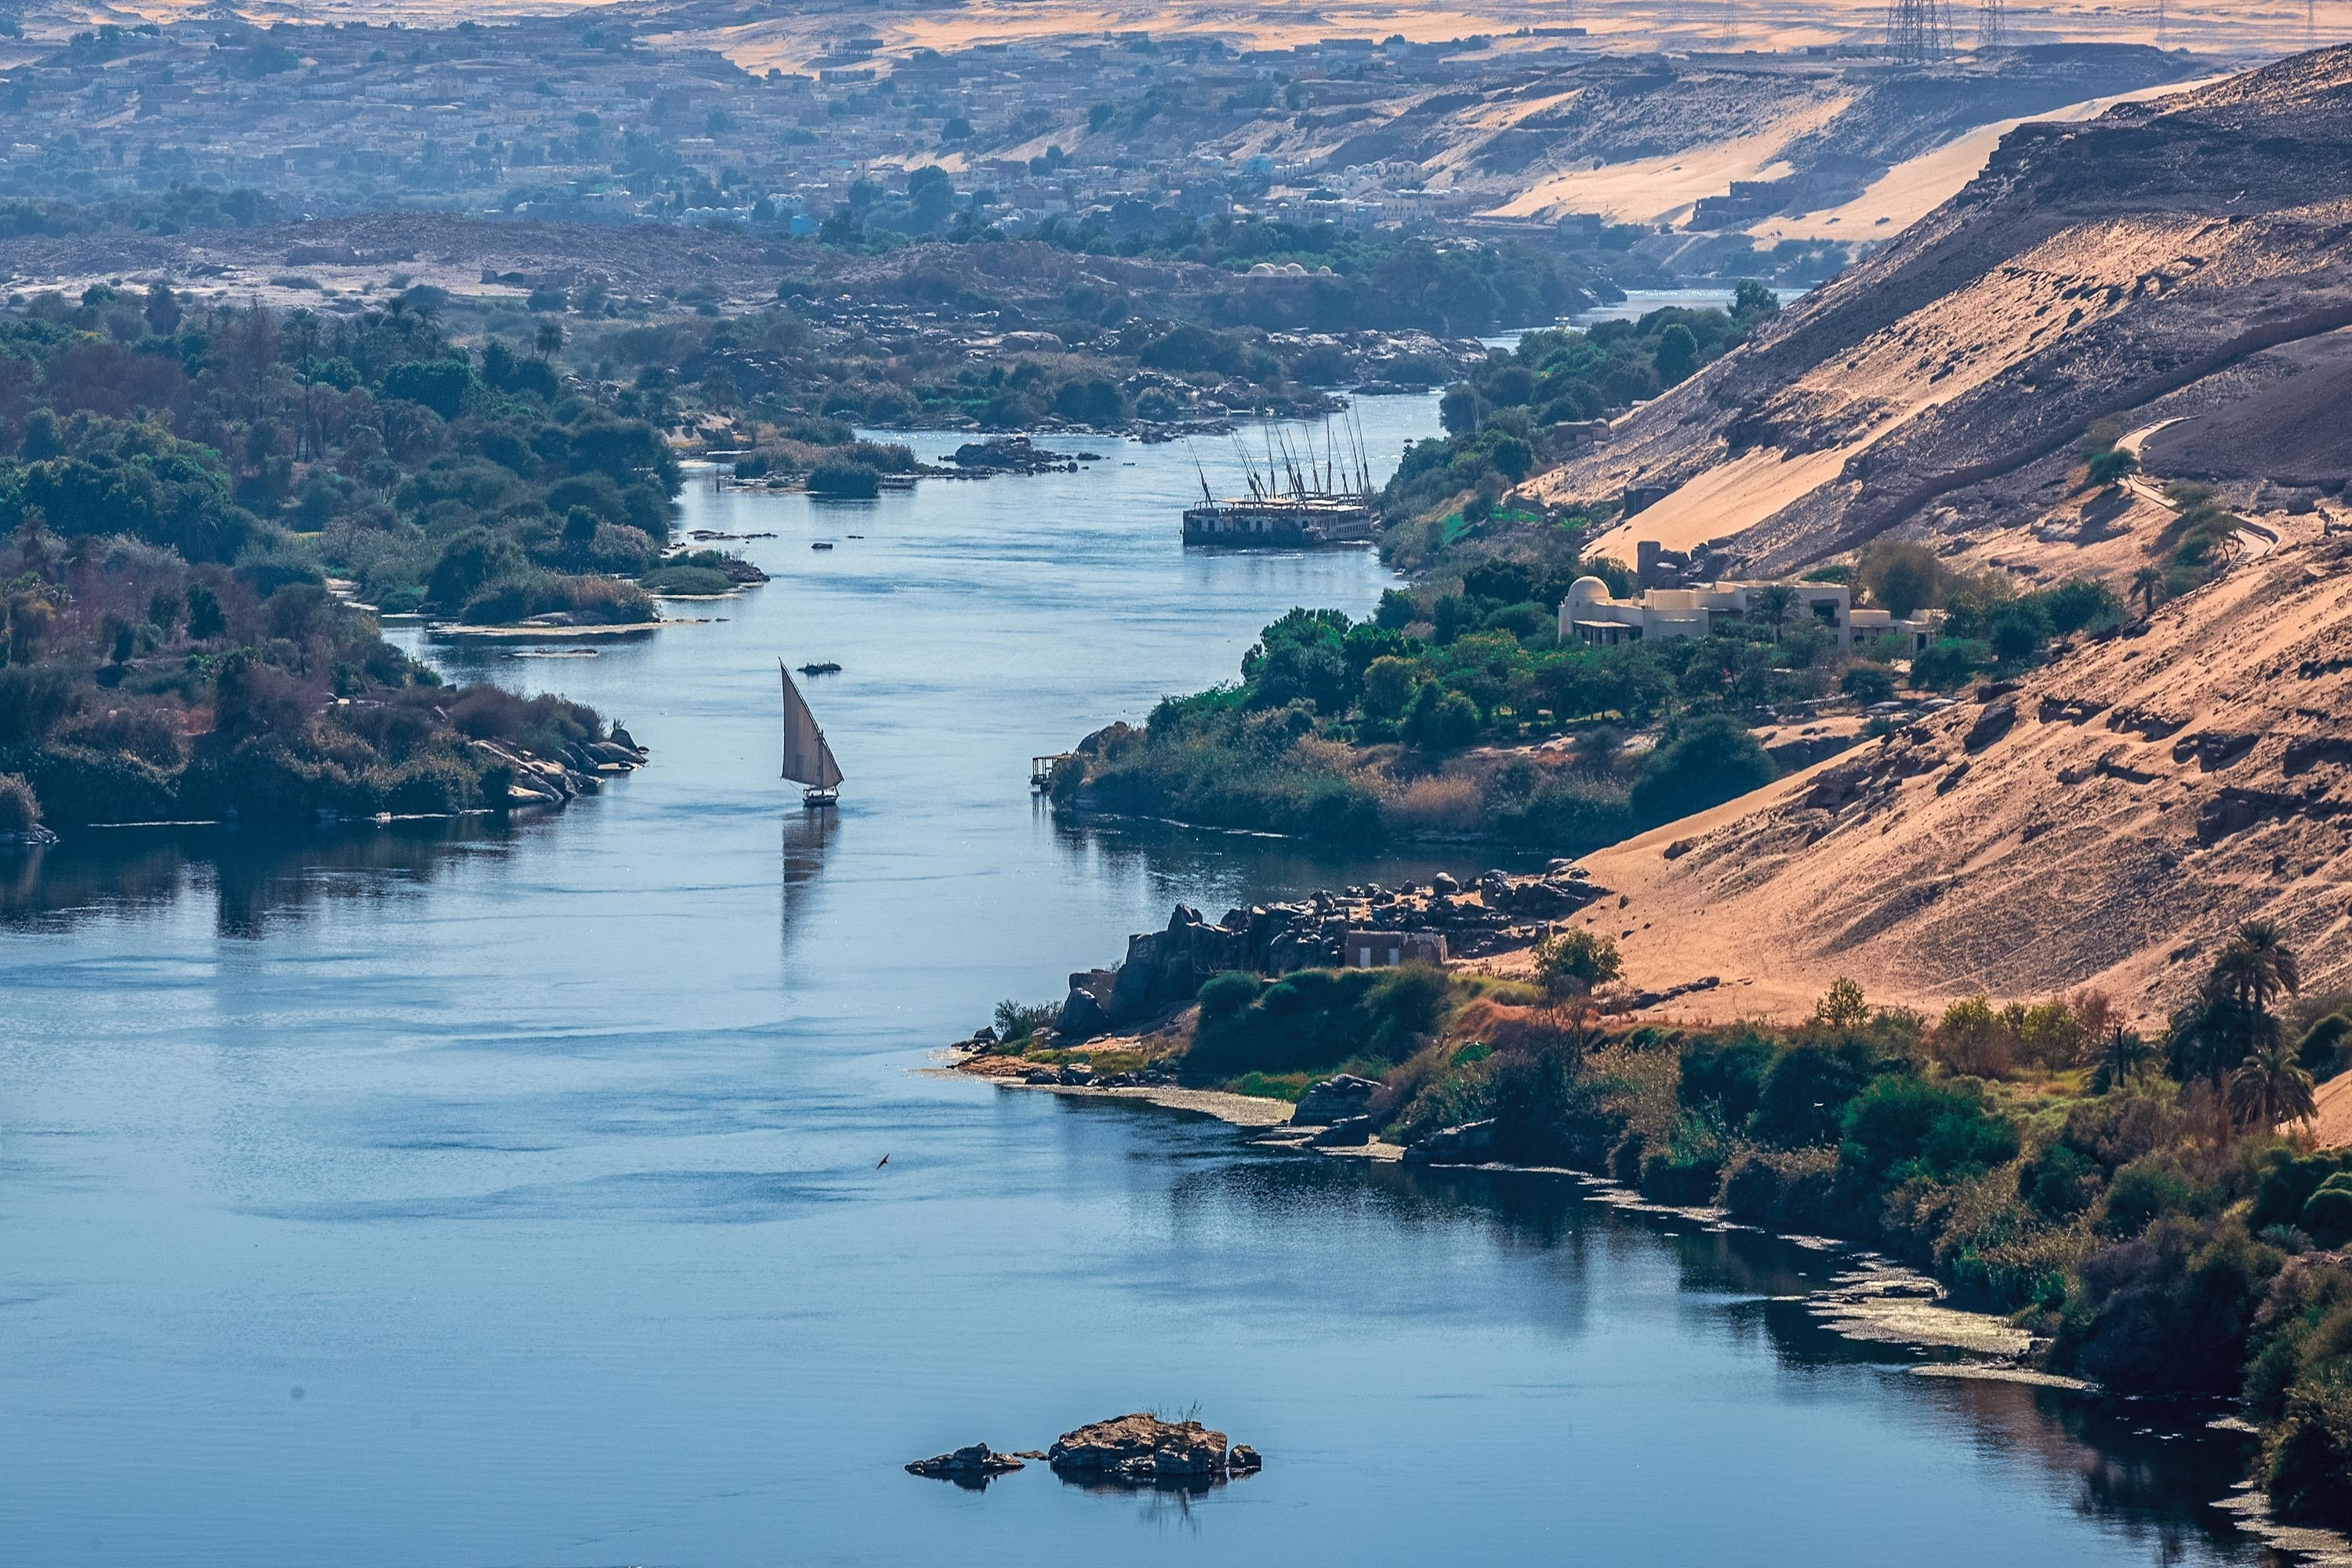 Sunset over the Nile River in the city of Aswan, Egypt, with sandy and deserted shores. (Shutterstock Photo)